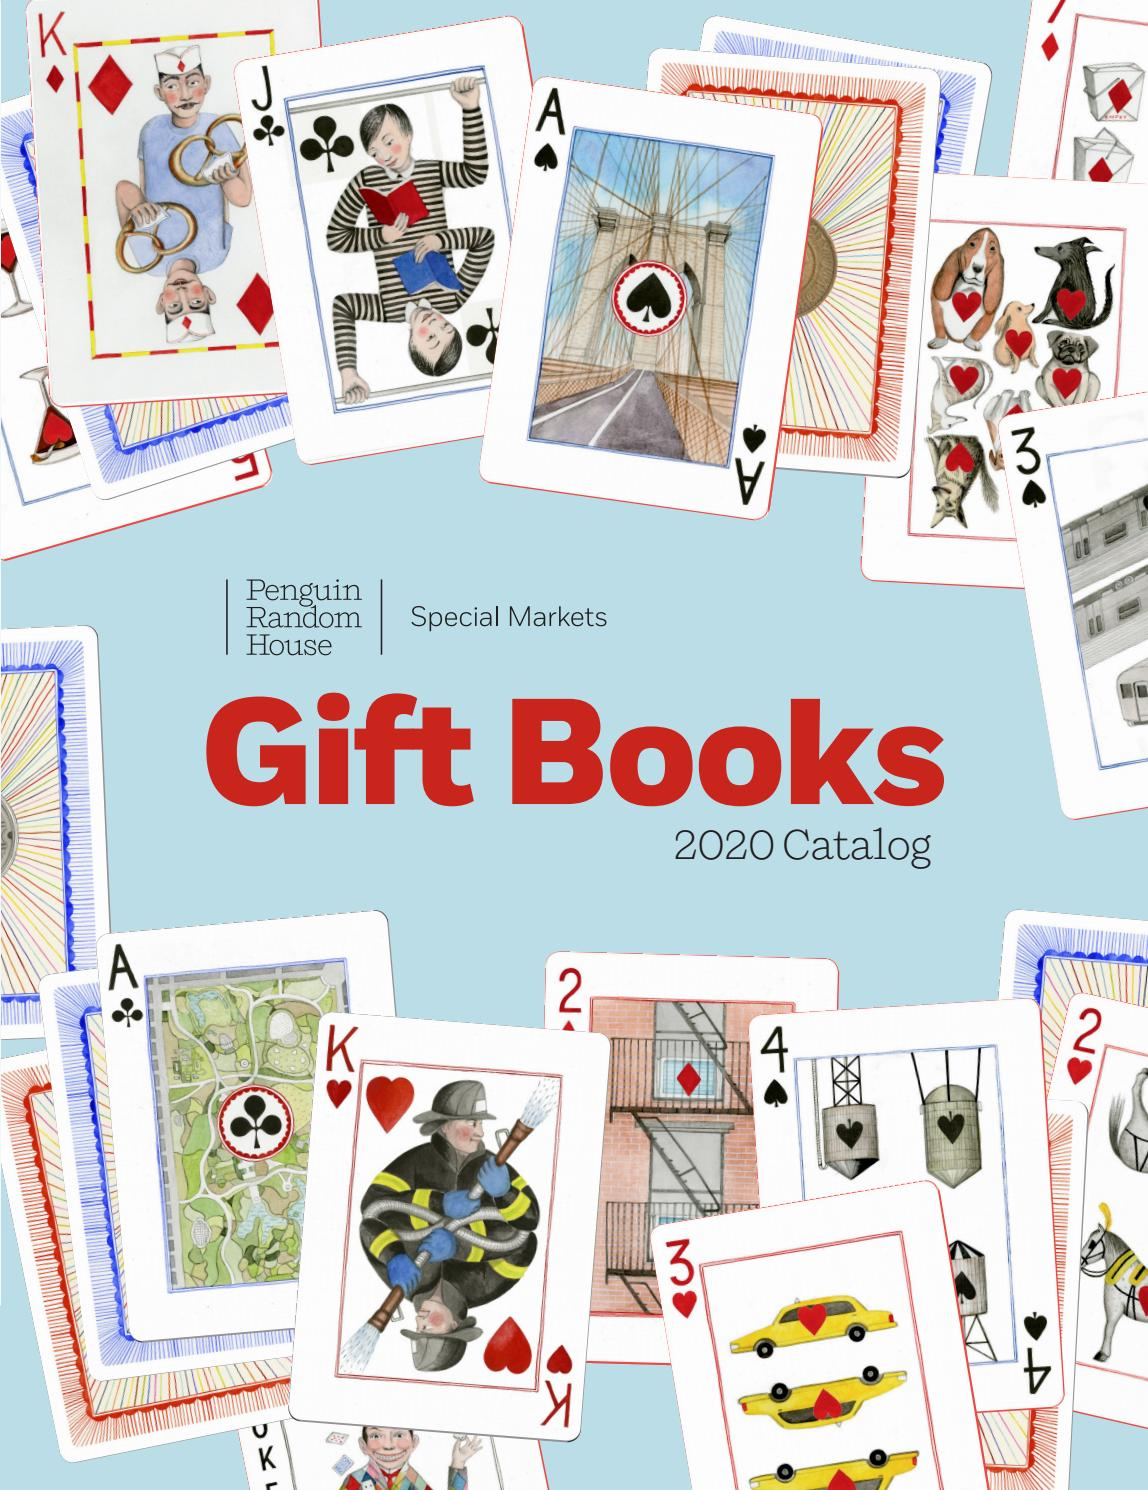 Penguin Random House Gift Books 2020 Catalog By Penguin Random House Special Markets Issuu